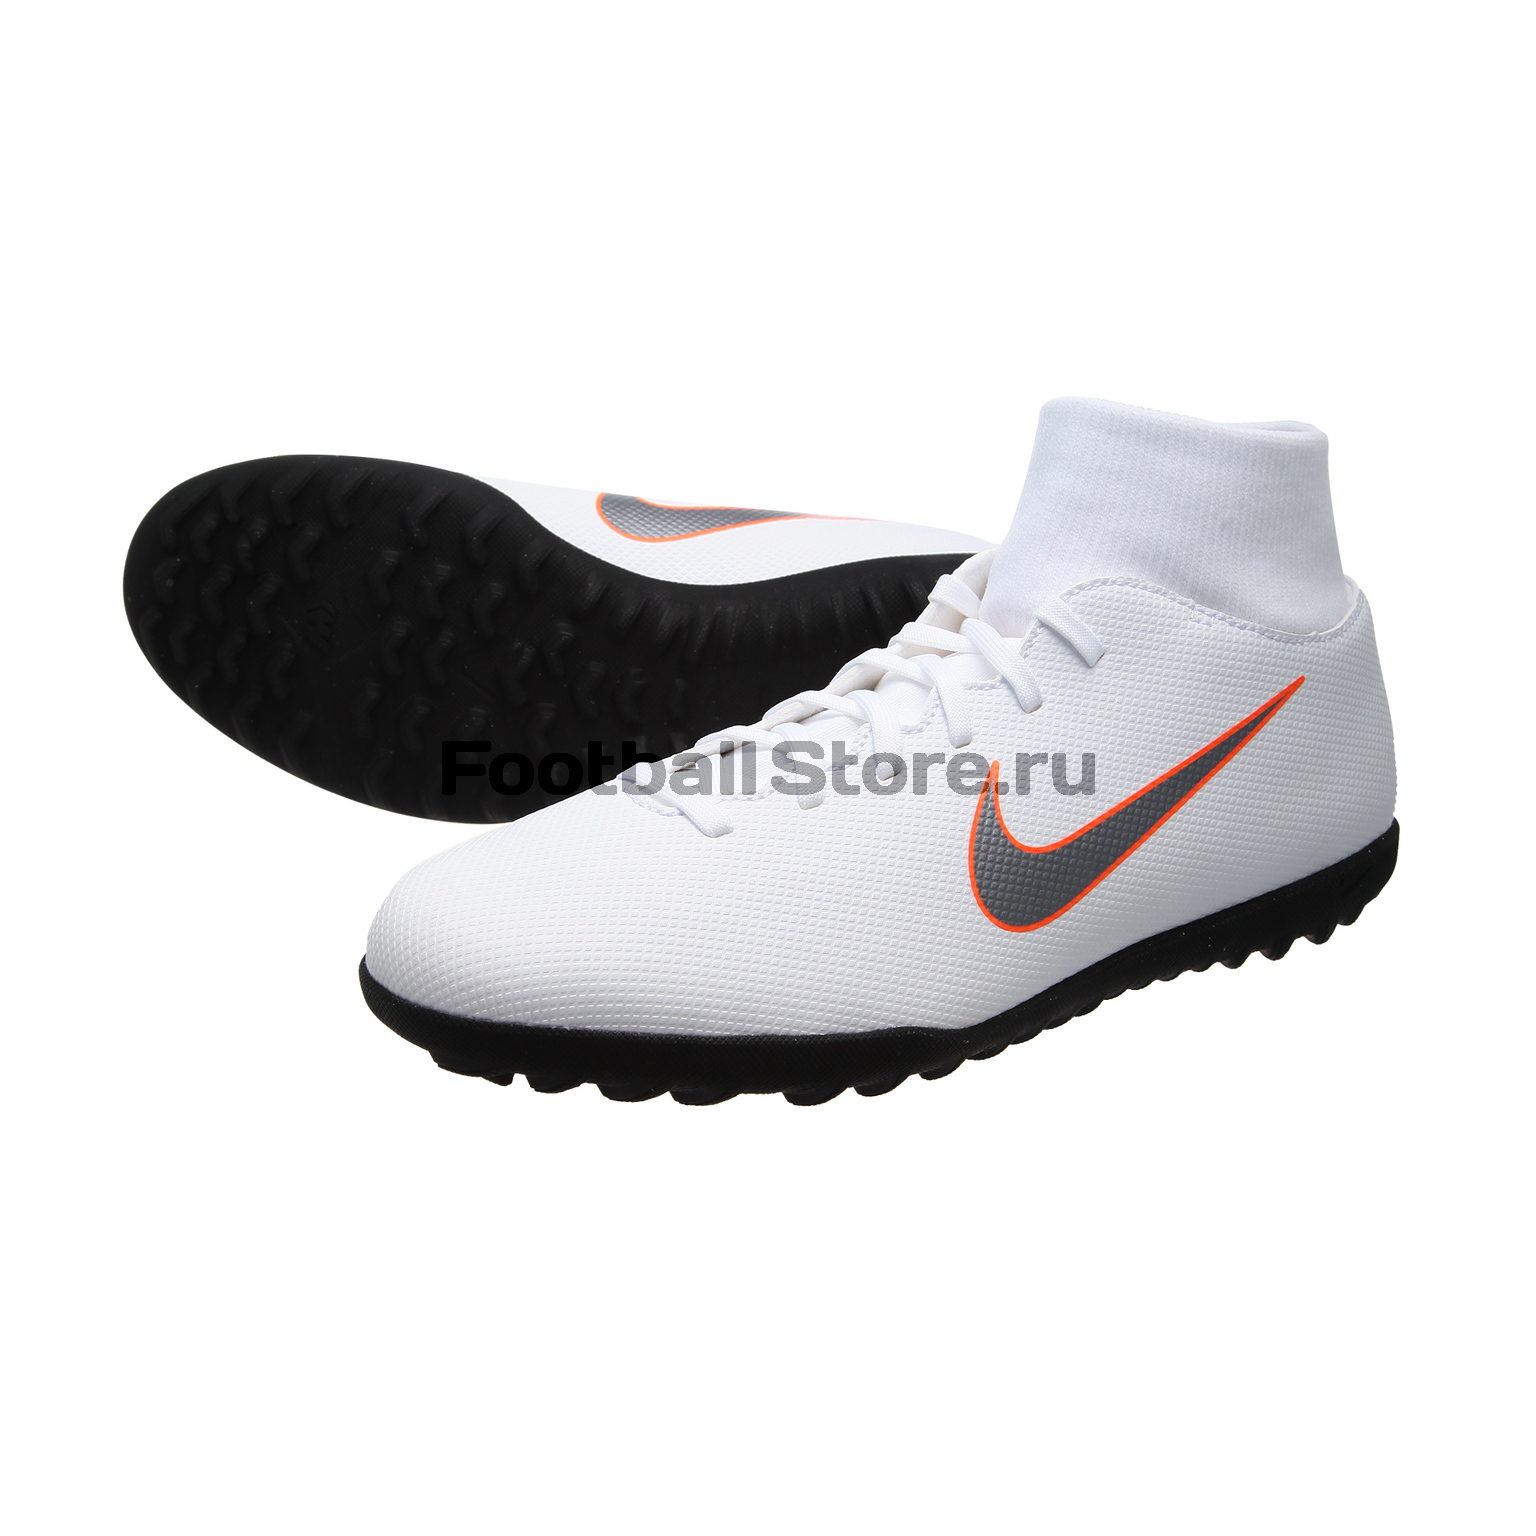 Шиповки Nike SuperflyX 6 Club TF AH7372-107 шиповки nike legendx 7 club tf ah7248 107